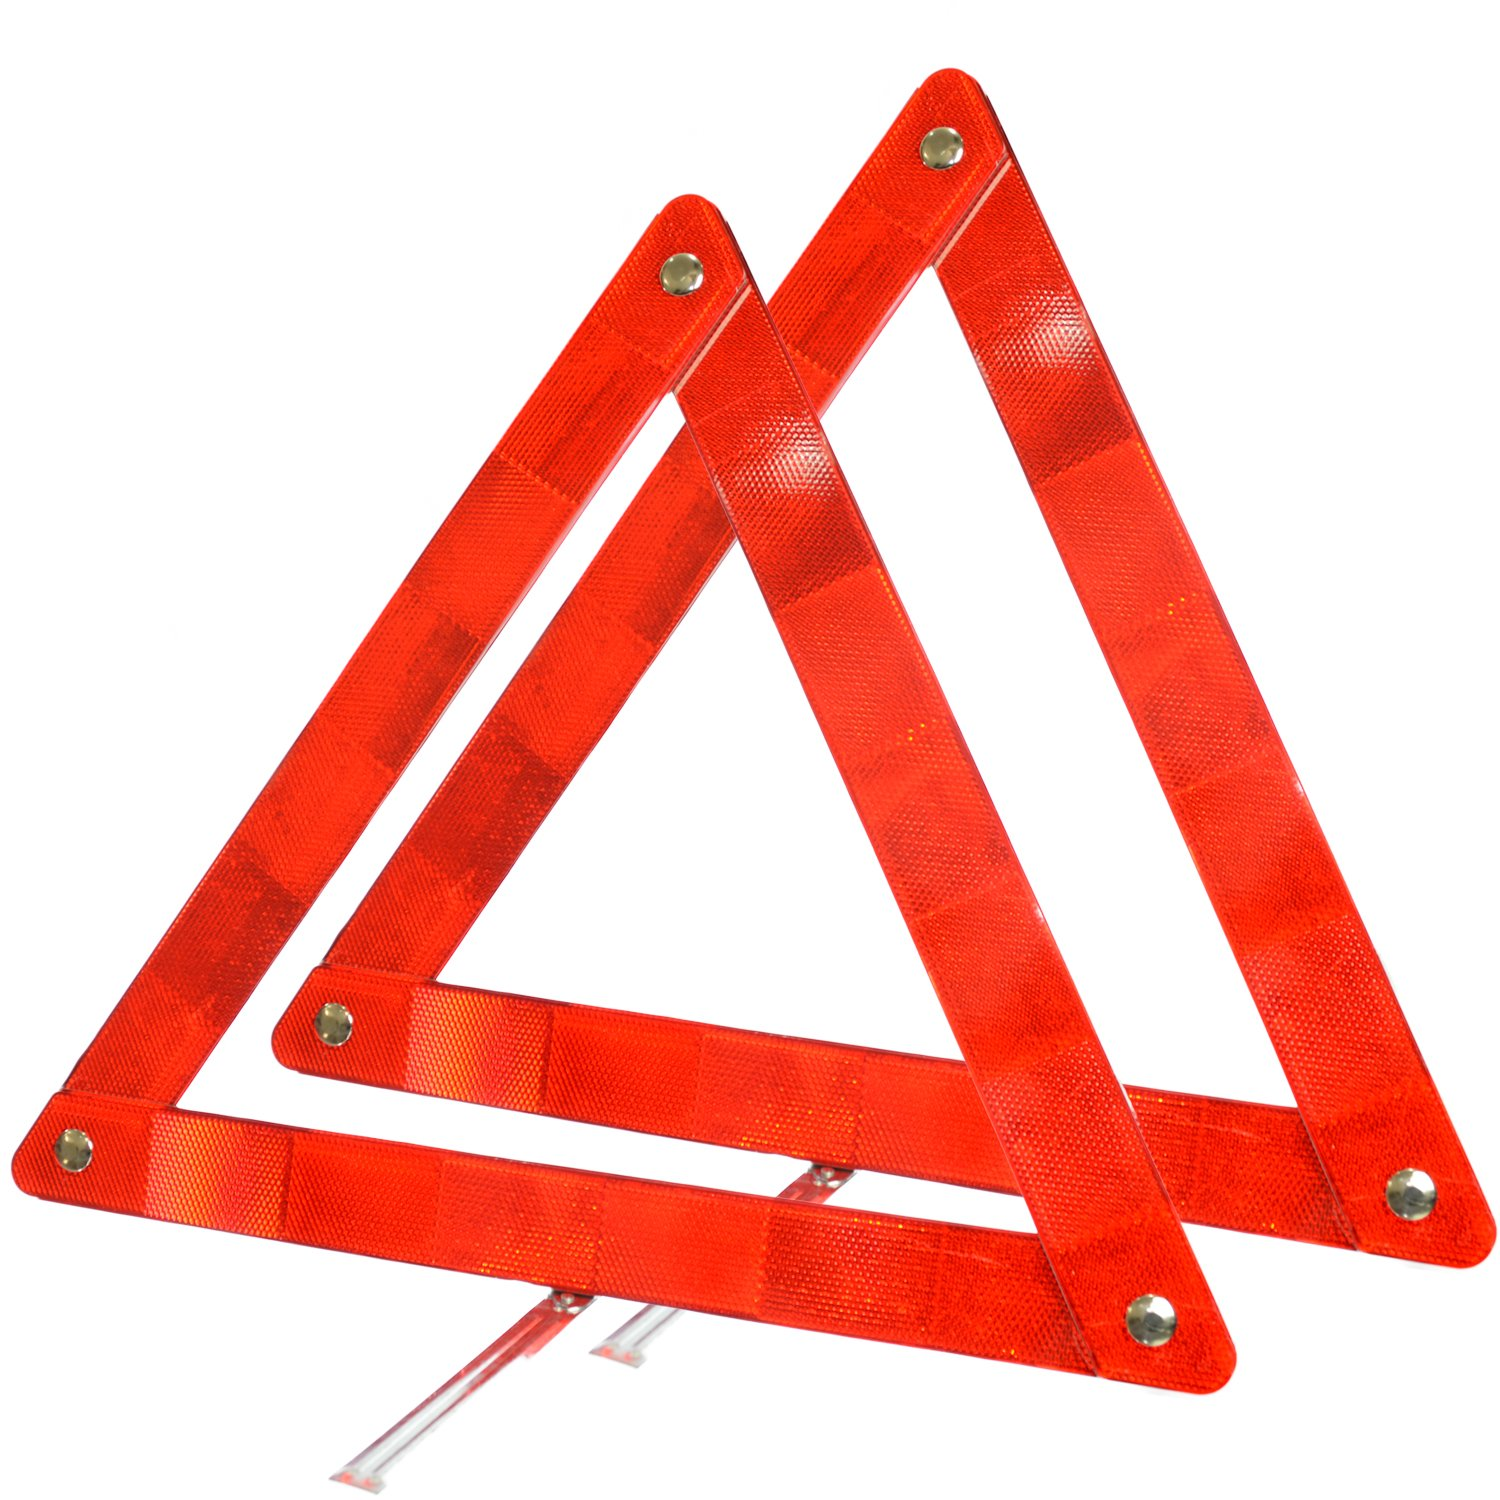 Majic Triangle Warning Reflector Alerts Motorist in case of Emergency or Tire Change 2-Pack Collapsable Design